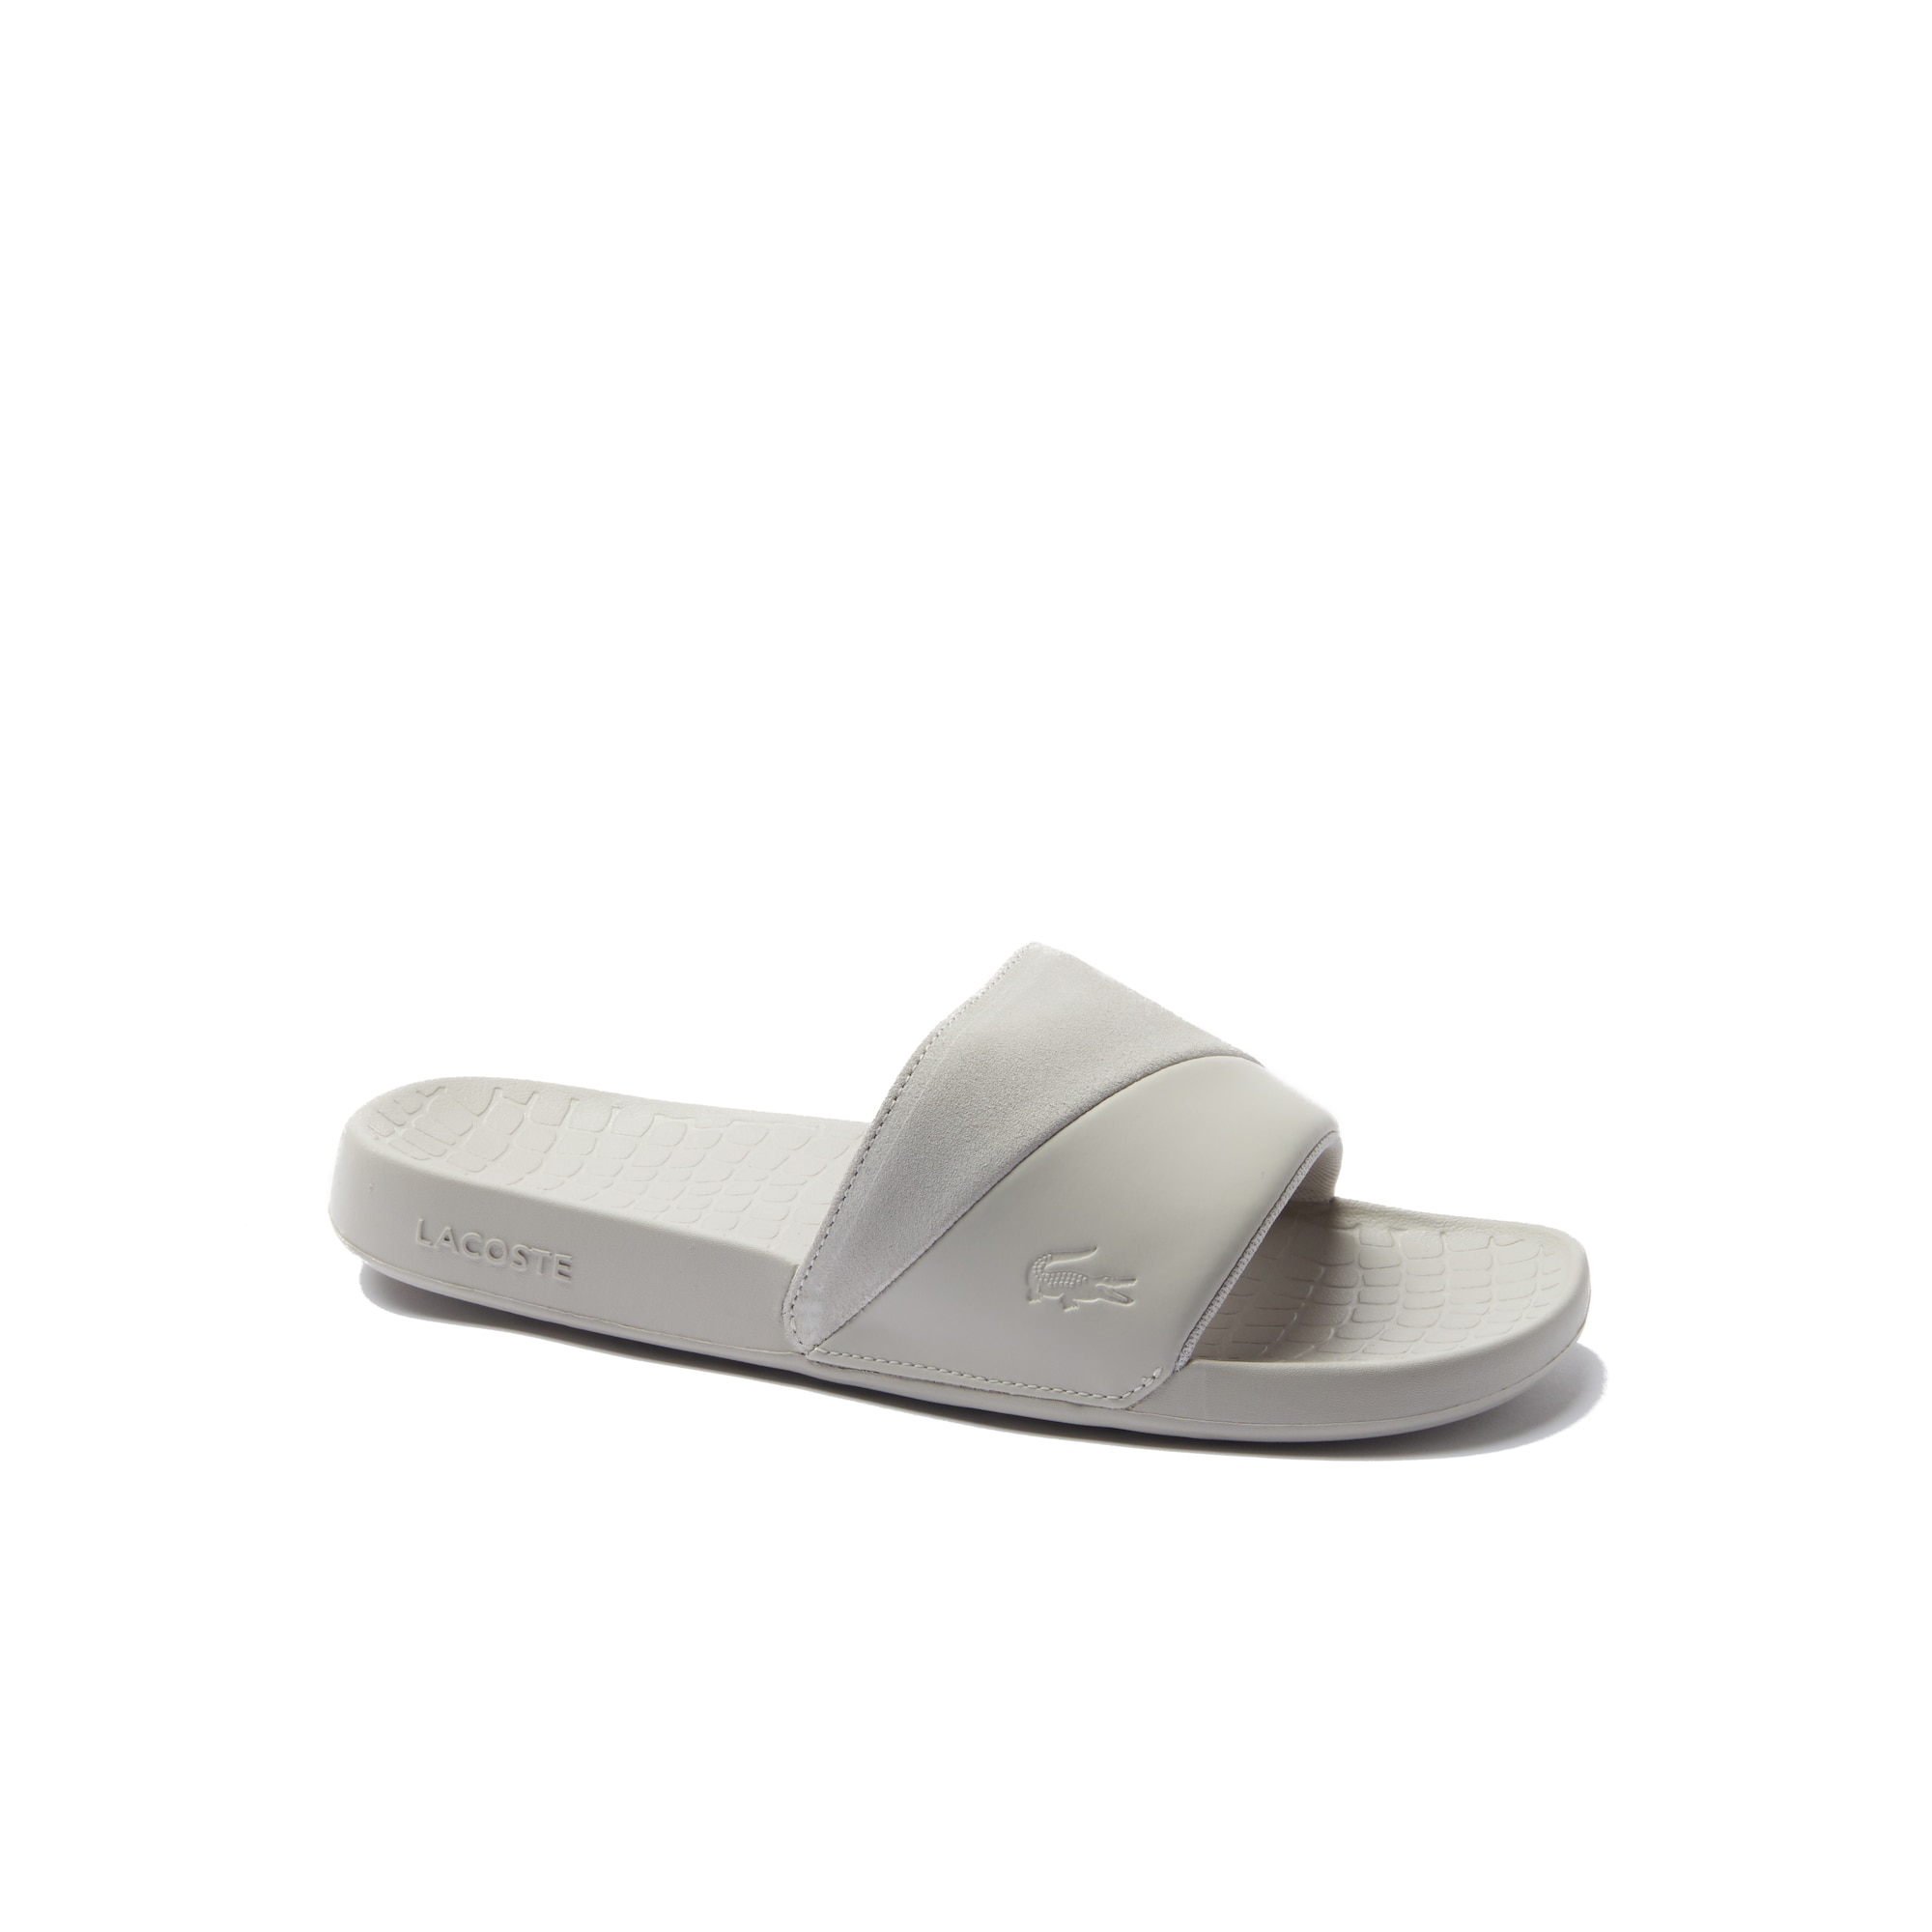 Women's Fraisier Leather and Suede Slides